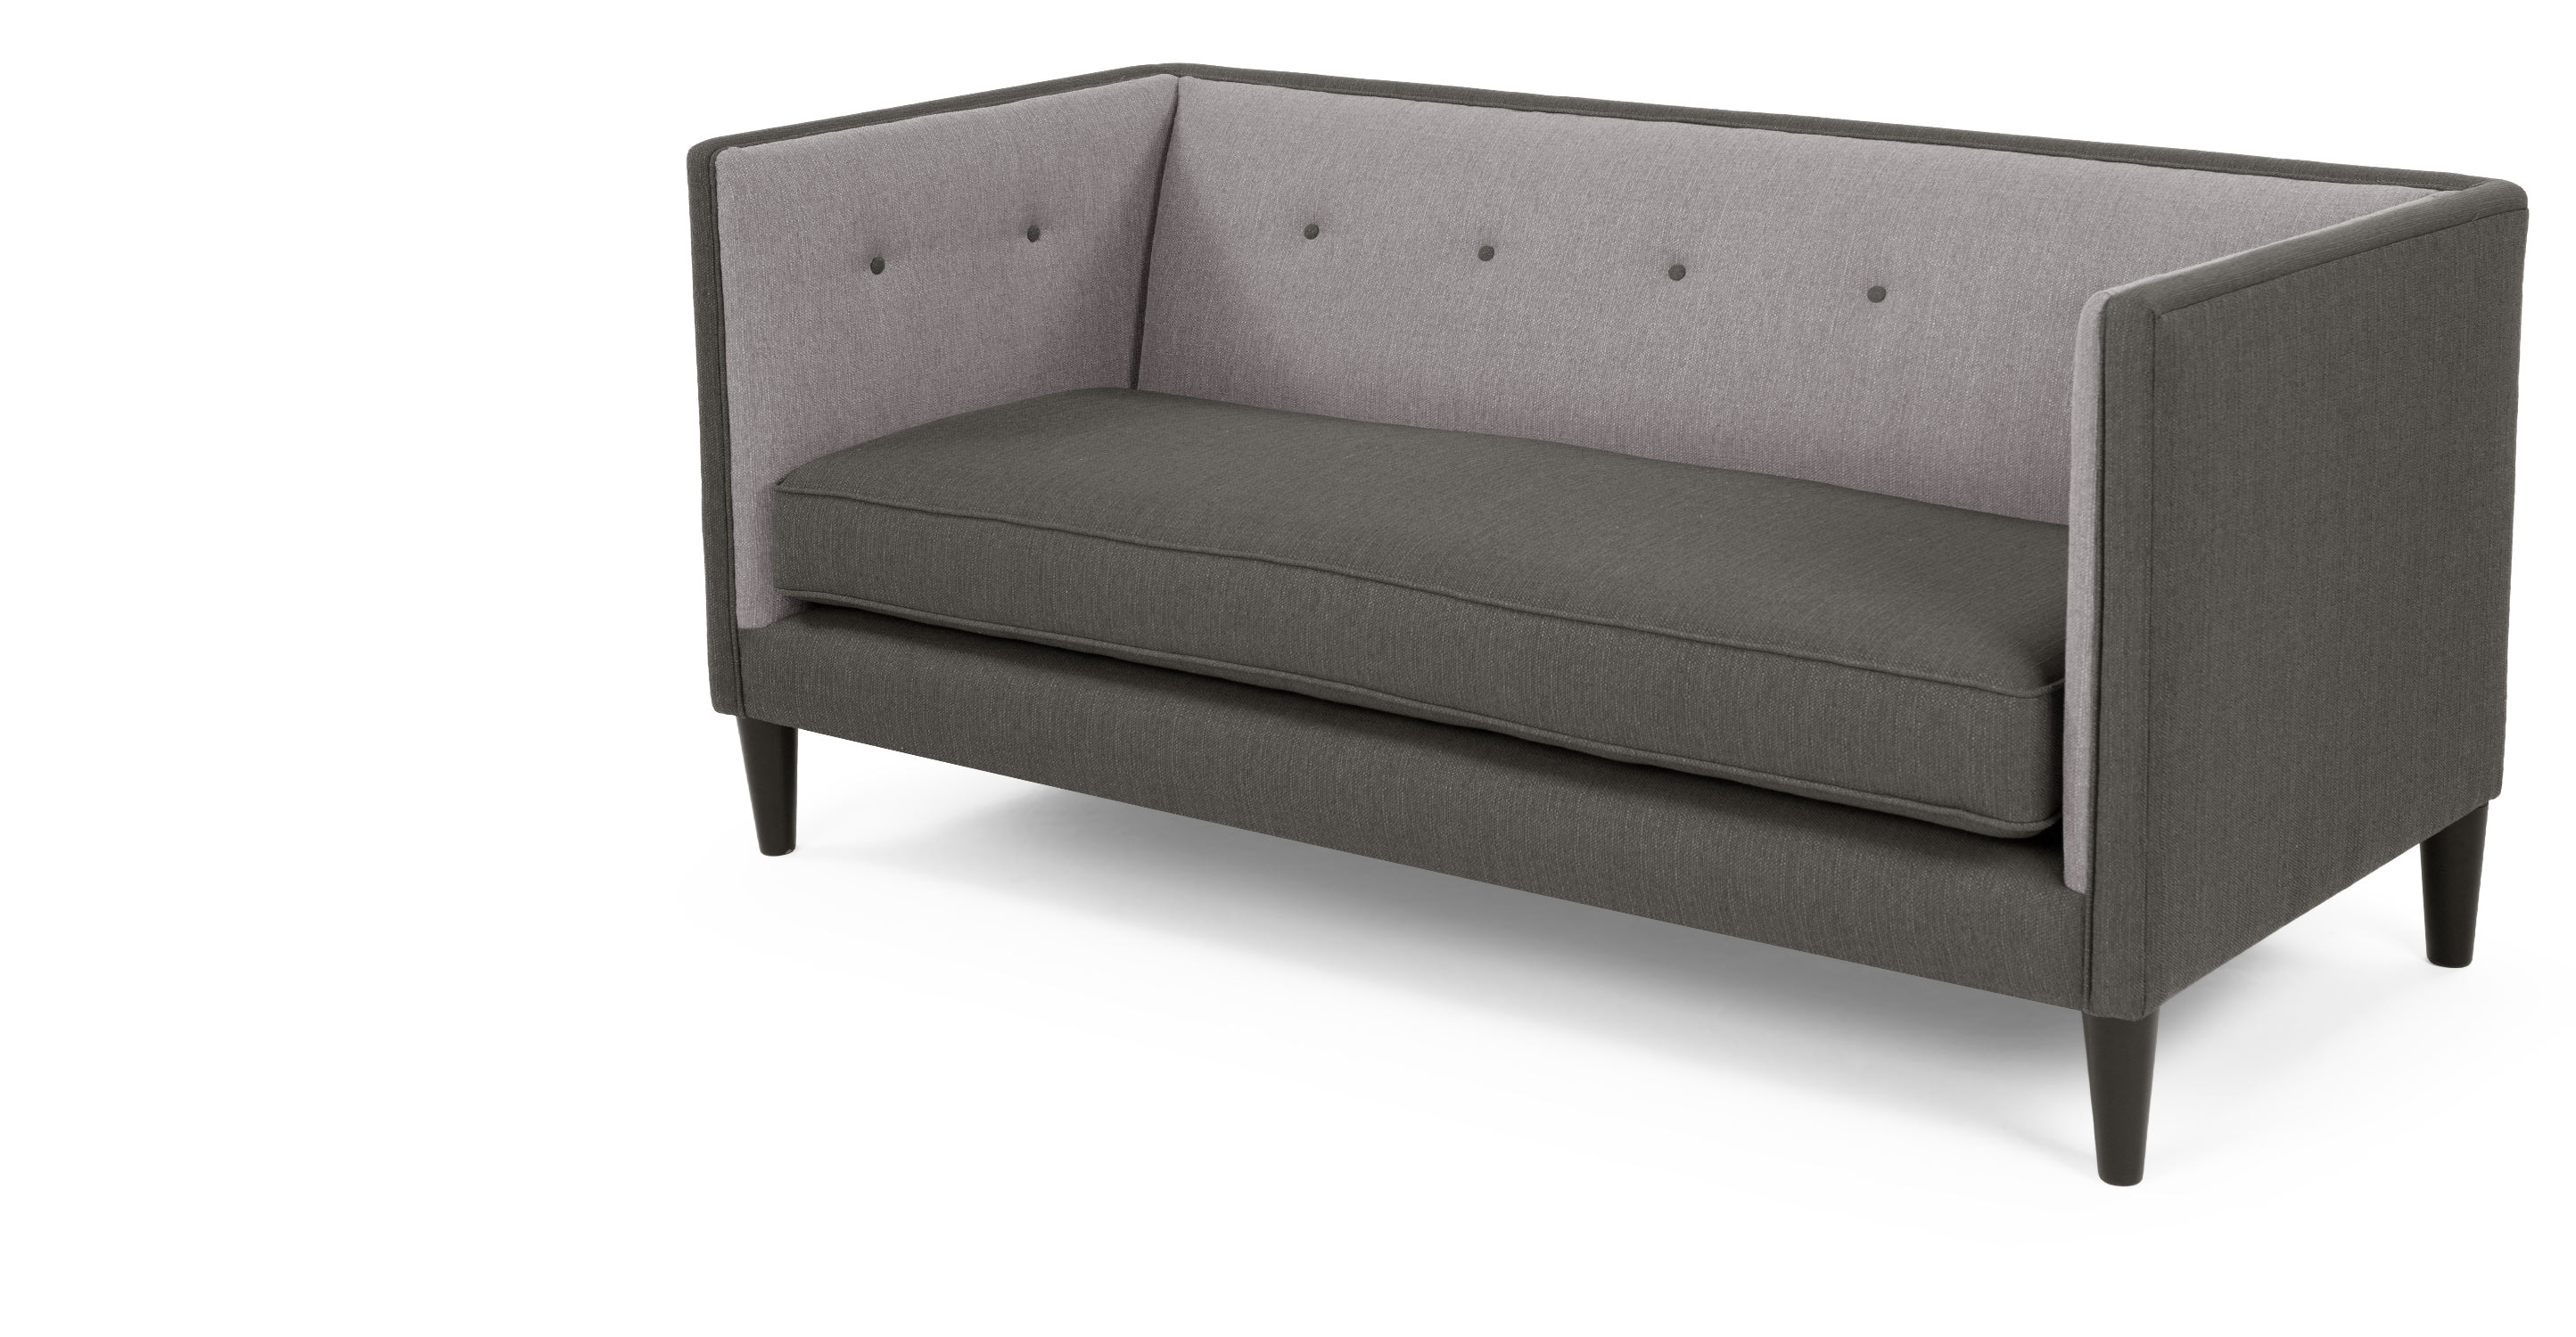 Anvers 3 Seater Sofa in tailor grey  made.com